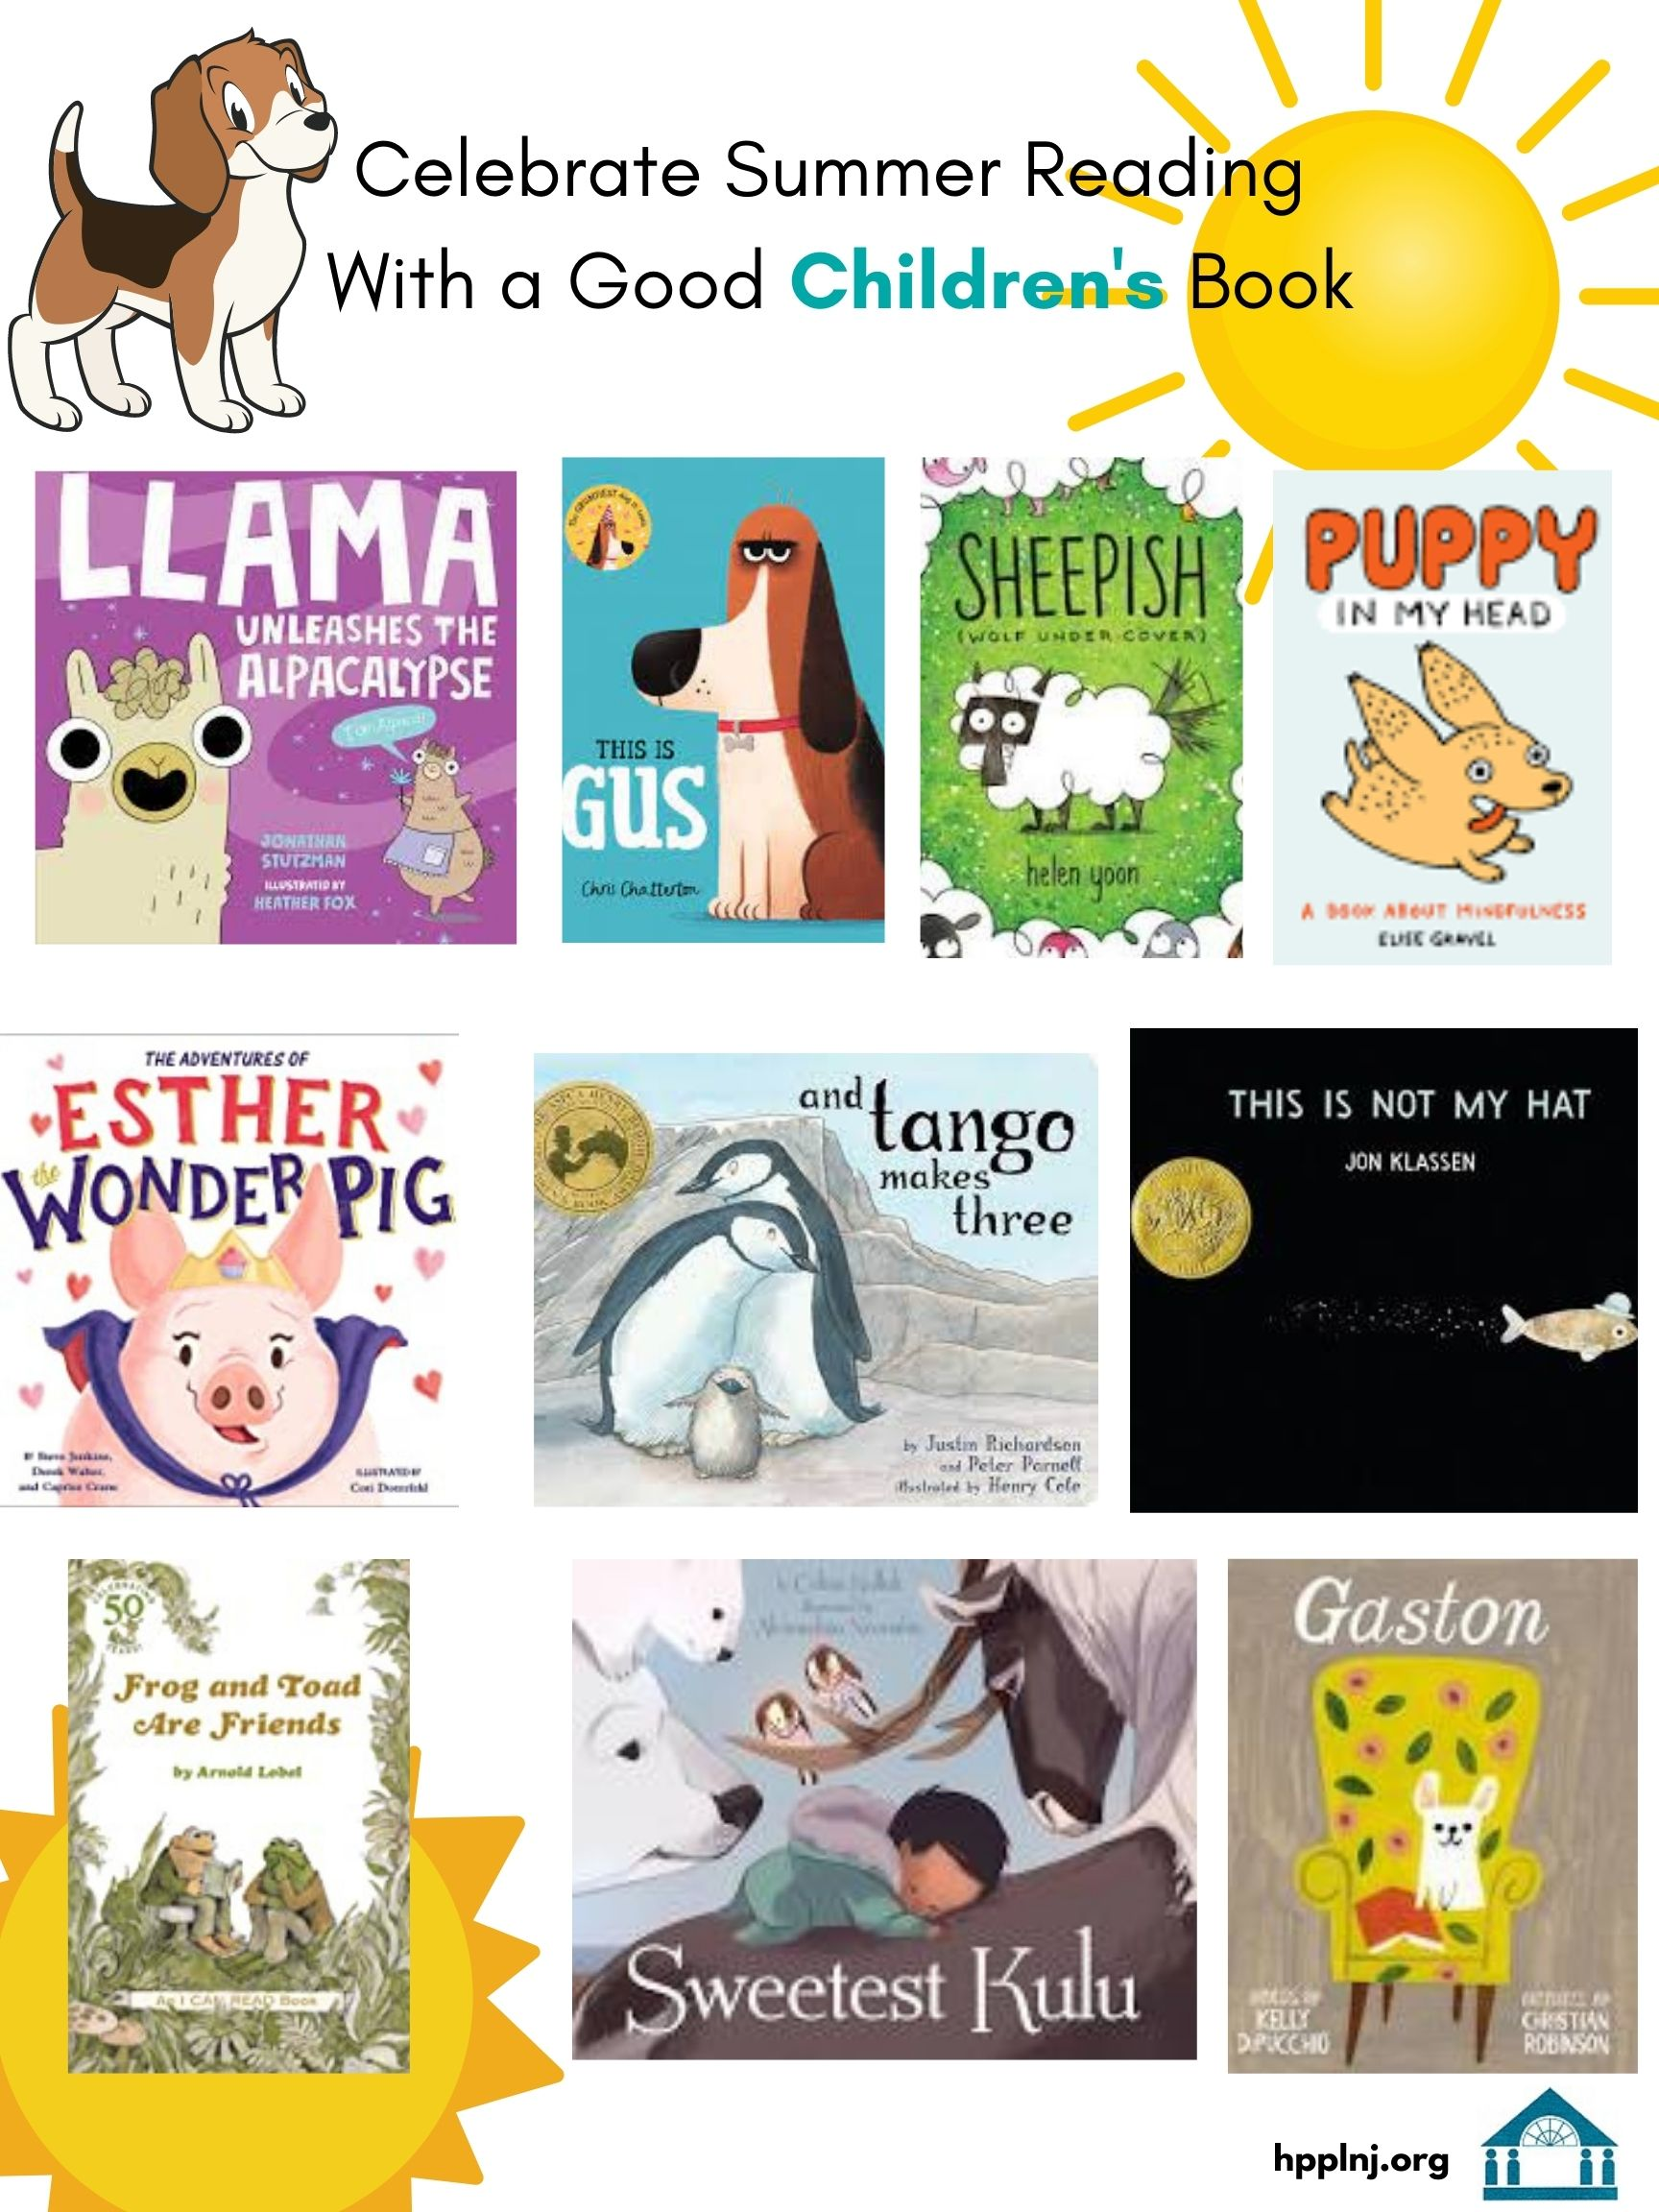 Celebrate Summer Reading with a Good Children's Book: Llama Unleashes the Alpacalypse, This is Gus, Sheepish, Puppy in my Head, Esther the Wonder Pig, And Tango Makes Three, This is Not My Hat, Frog and Toad are Friends, Sweetest Kulu, Gaston